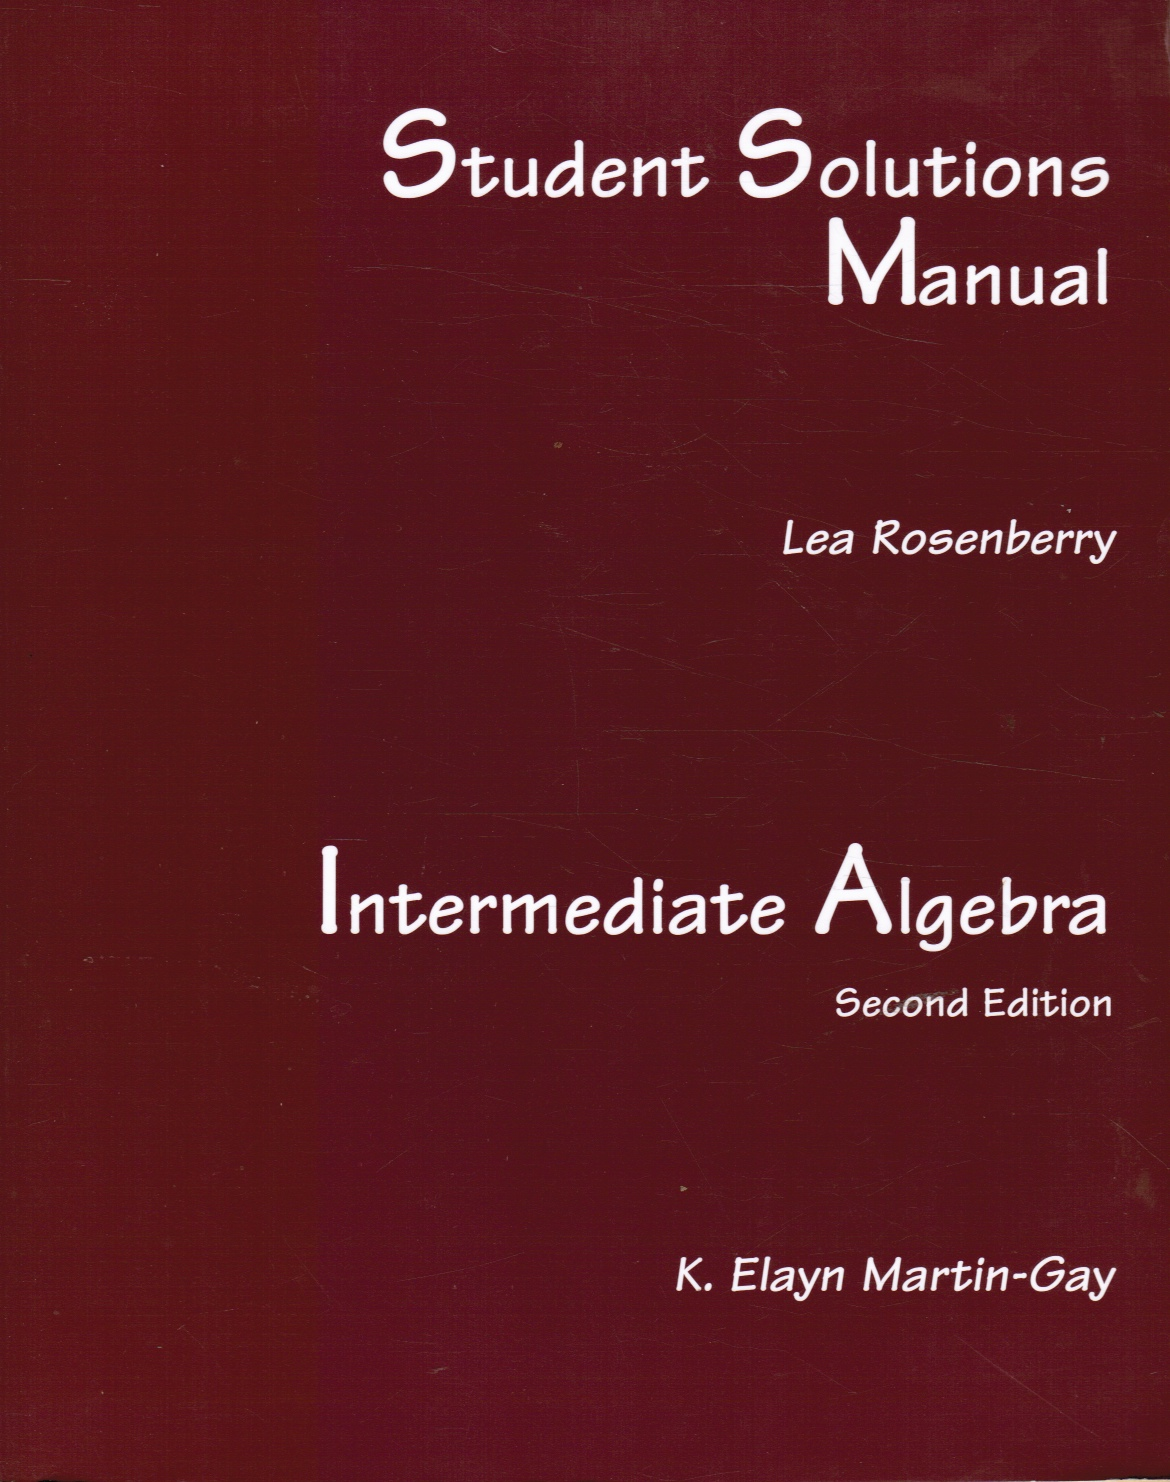 Image for Student Solutions Manual to Intermediate Algebra by K. Elayn Martin-Gay